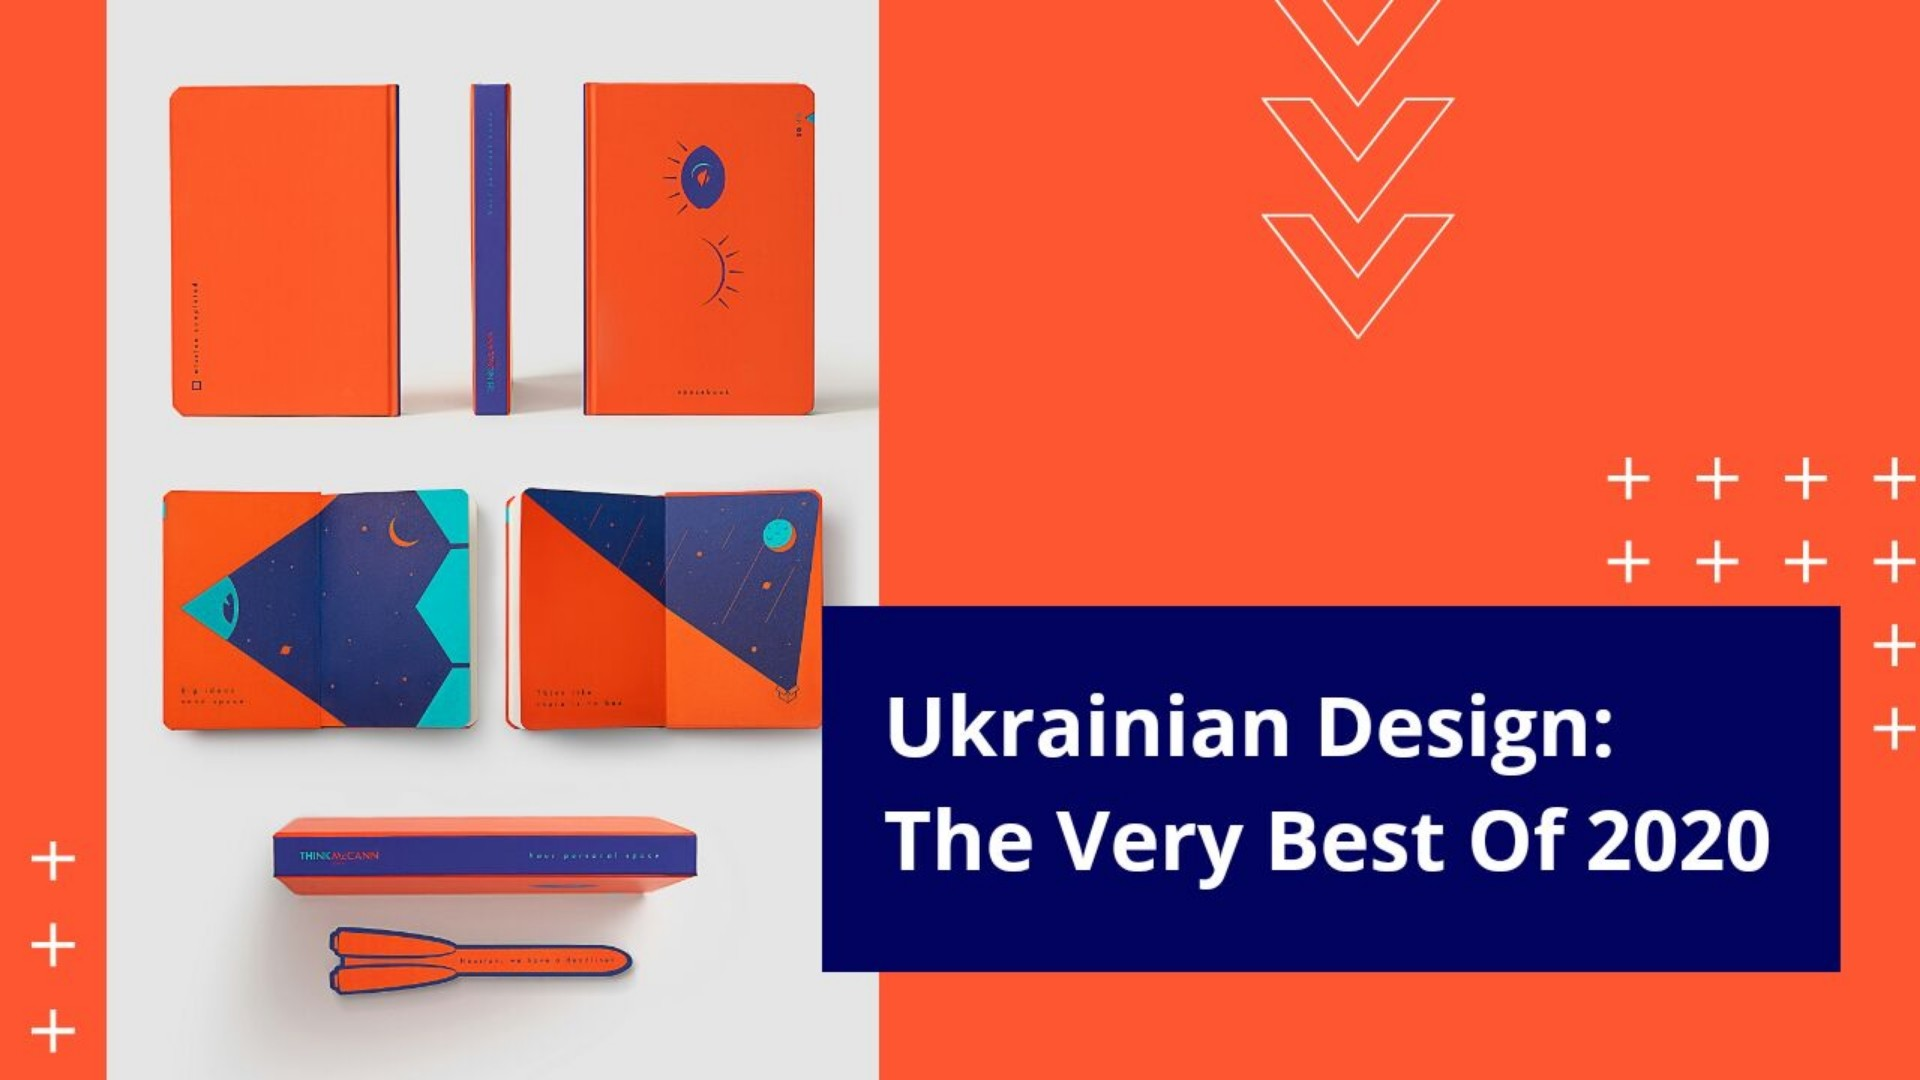 Ukrainian Design: The Very Best Of 2020